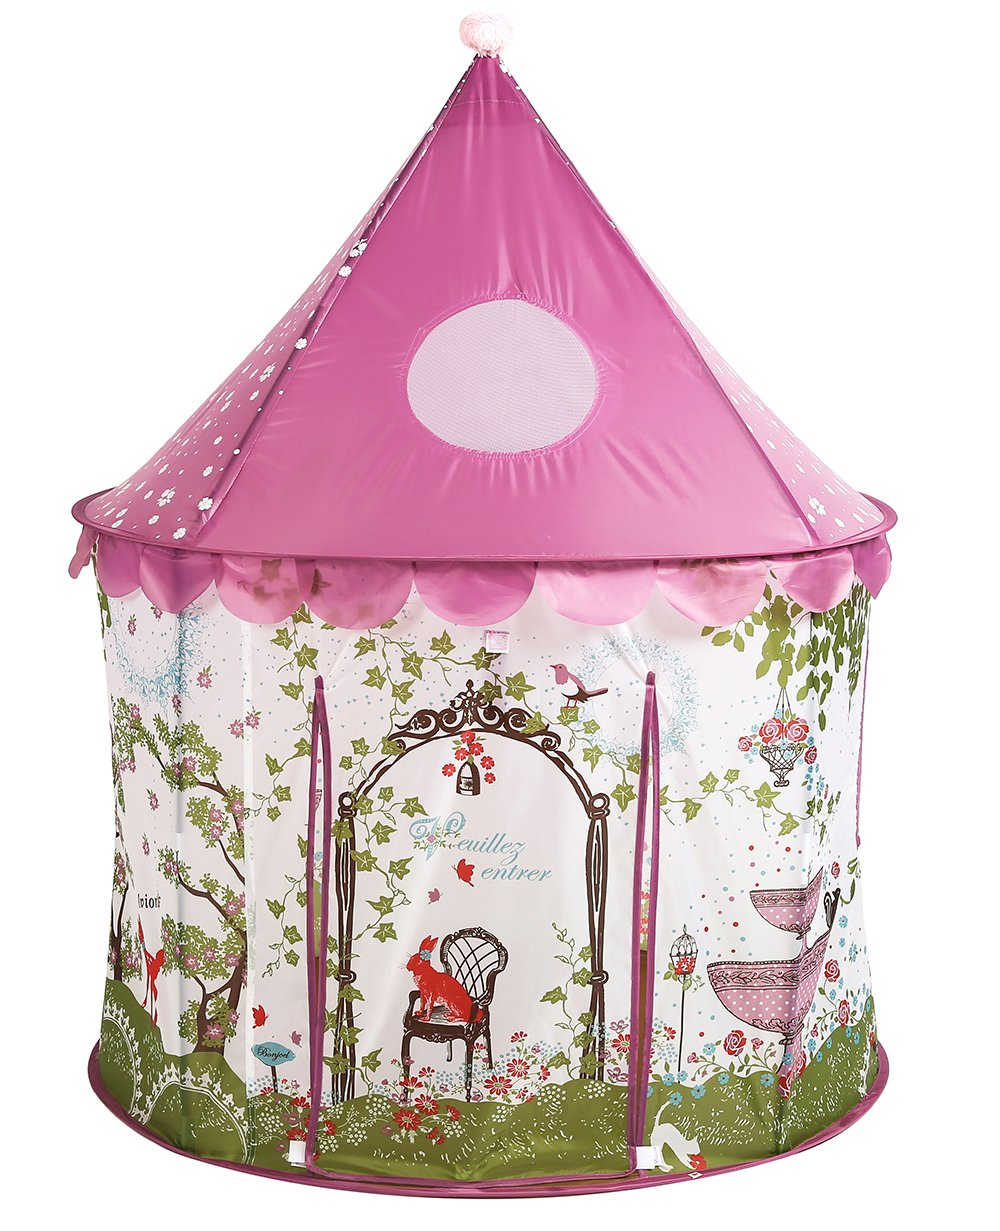 UTEX Girls Princess Fairy Tale Castle Play Tent with Pink Prairie Design Foldable for Indoor & Outdoor Use, with Zipper Storage Case by UTEX